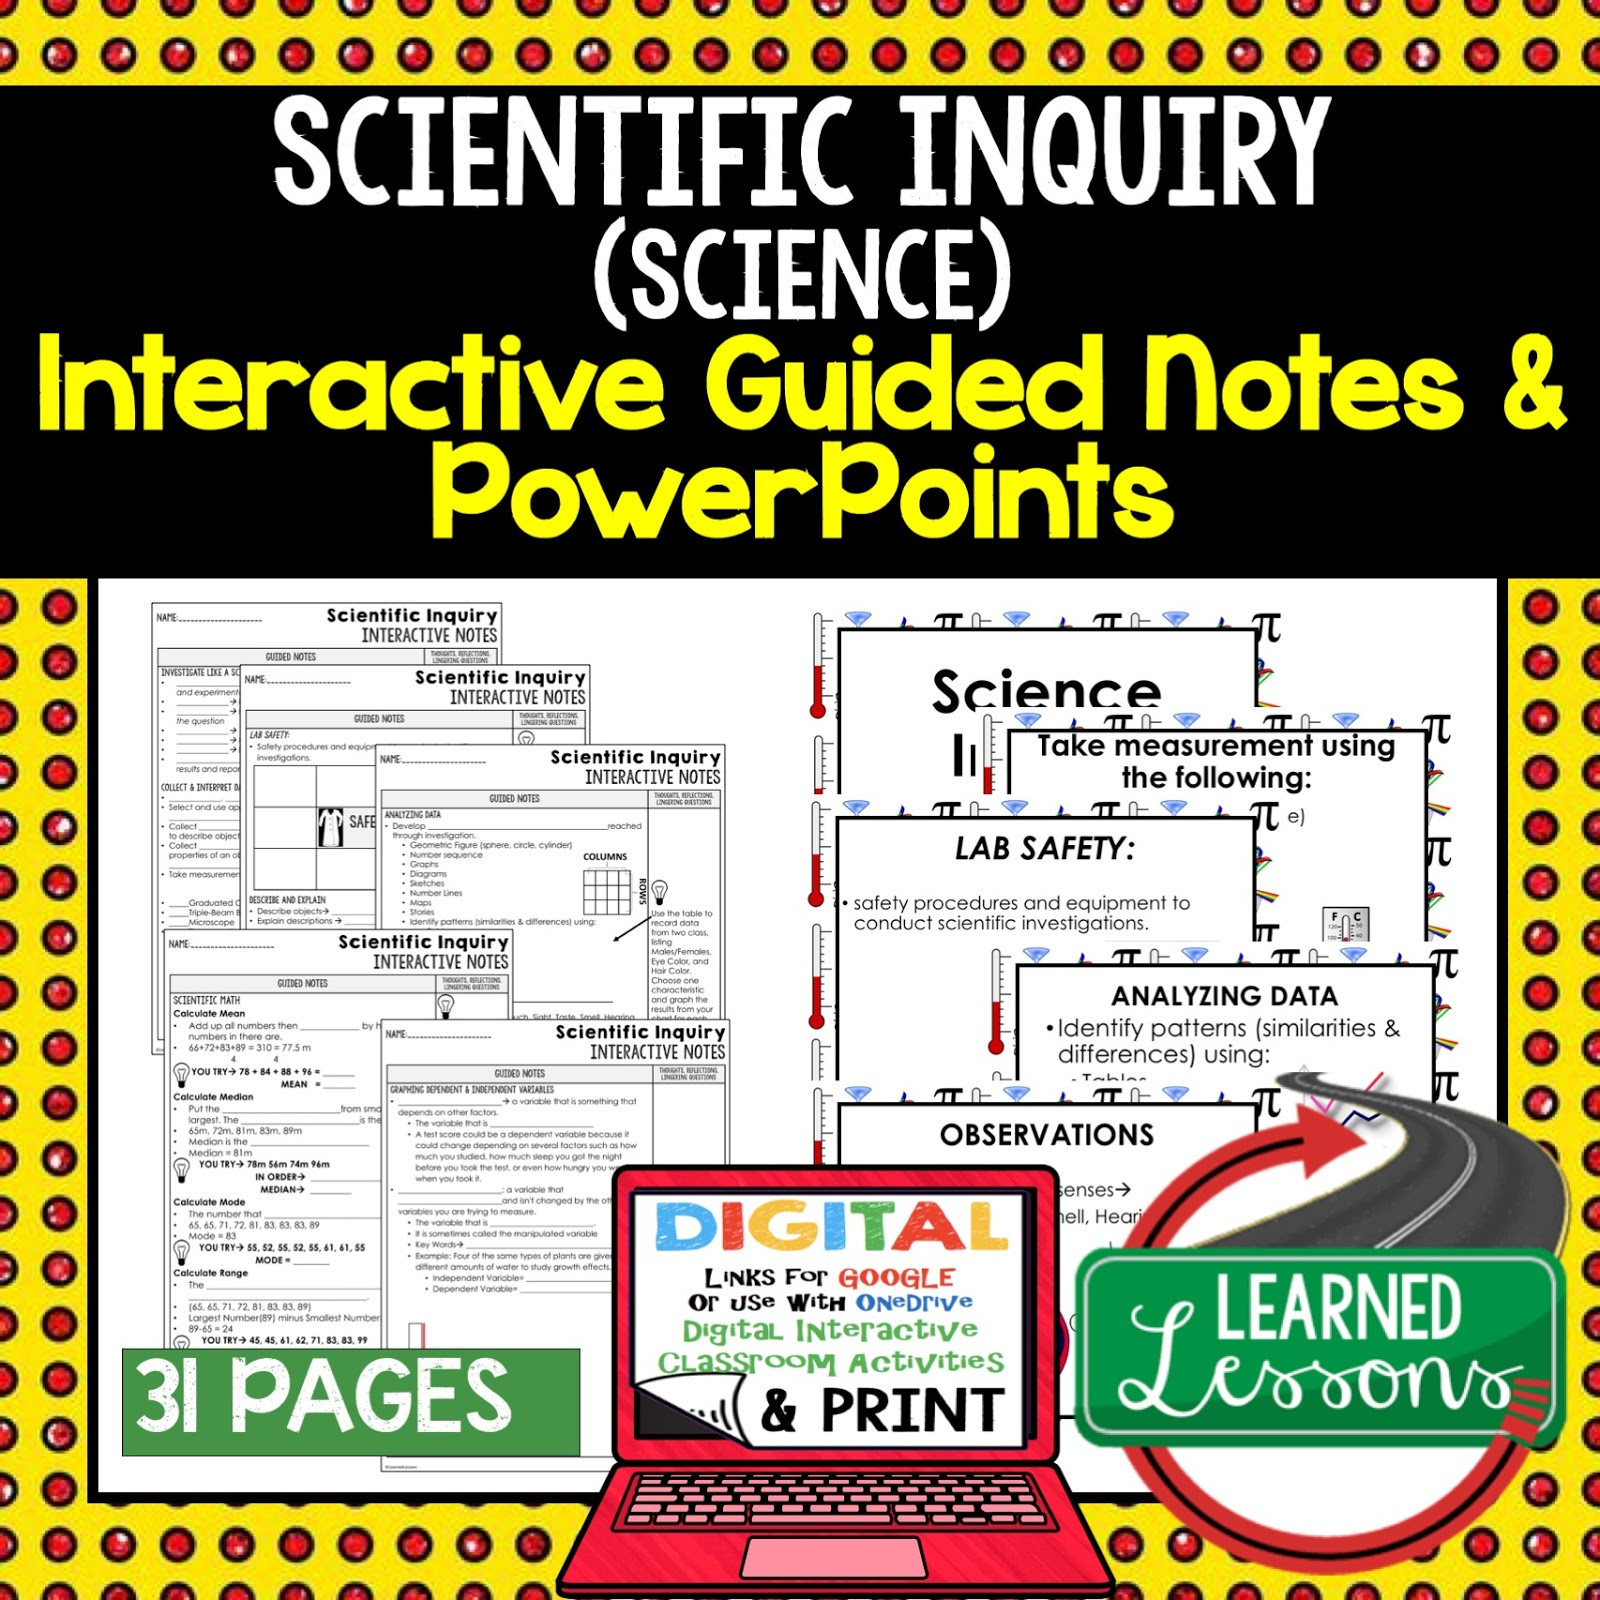 earth science guided notes and powerpoints ngss next generation science standards google and print